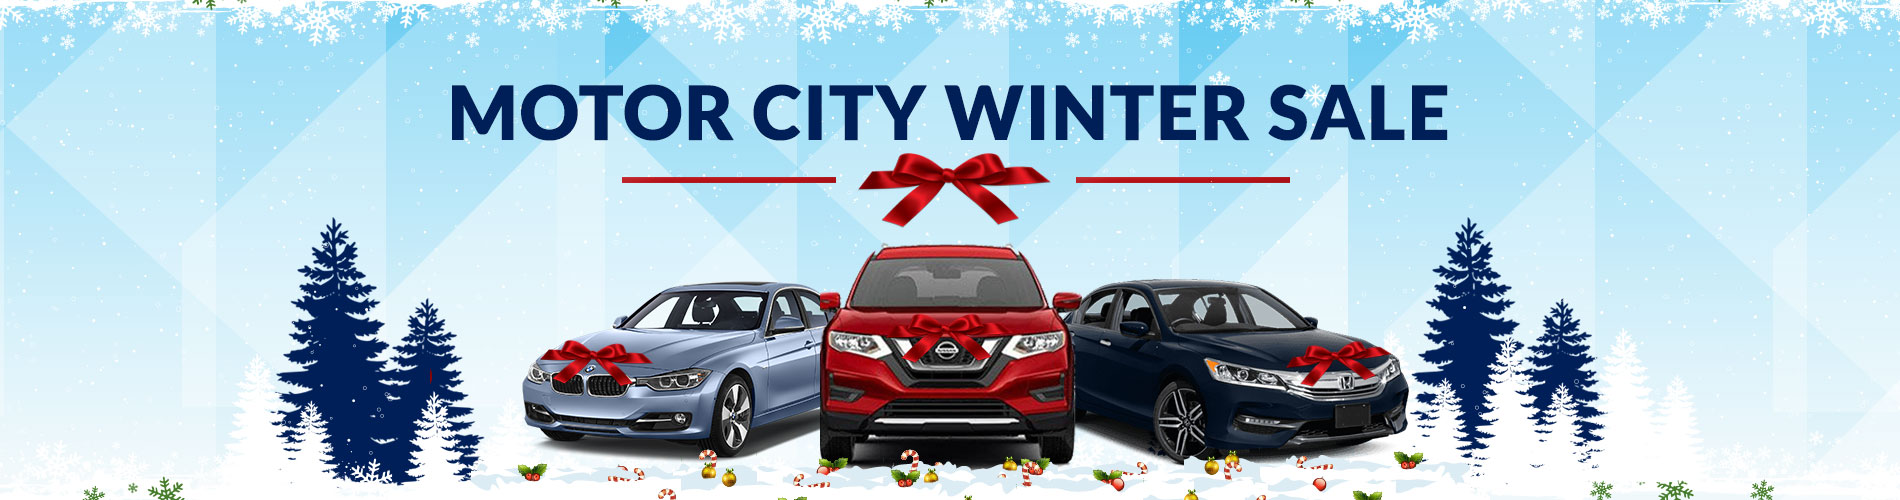 Motor City Winter Sale